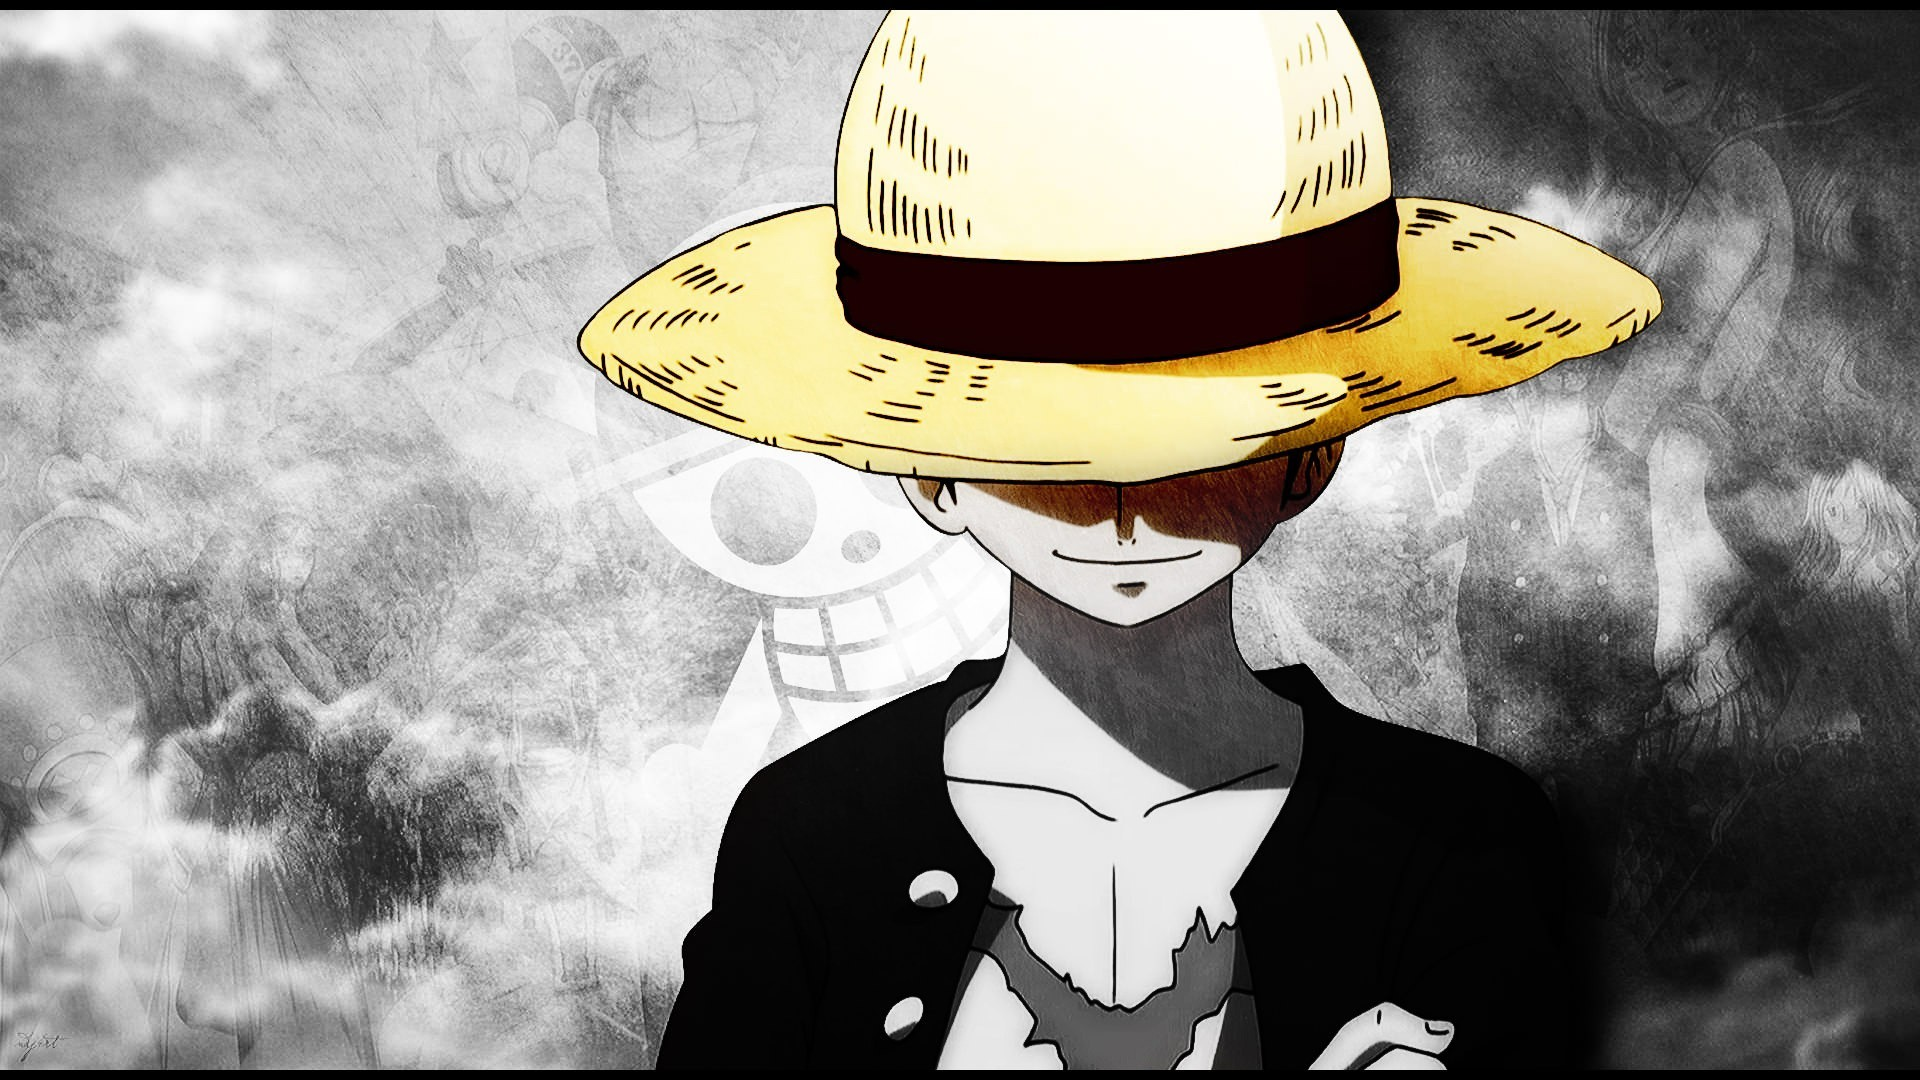 1920x1080 One Piece HD Wallpapers (44 Wallpapers)